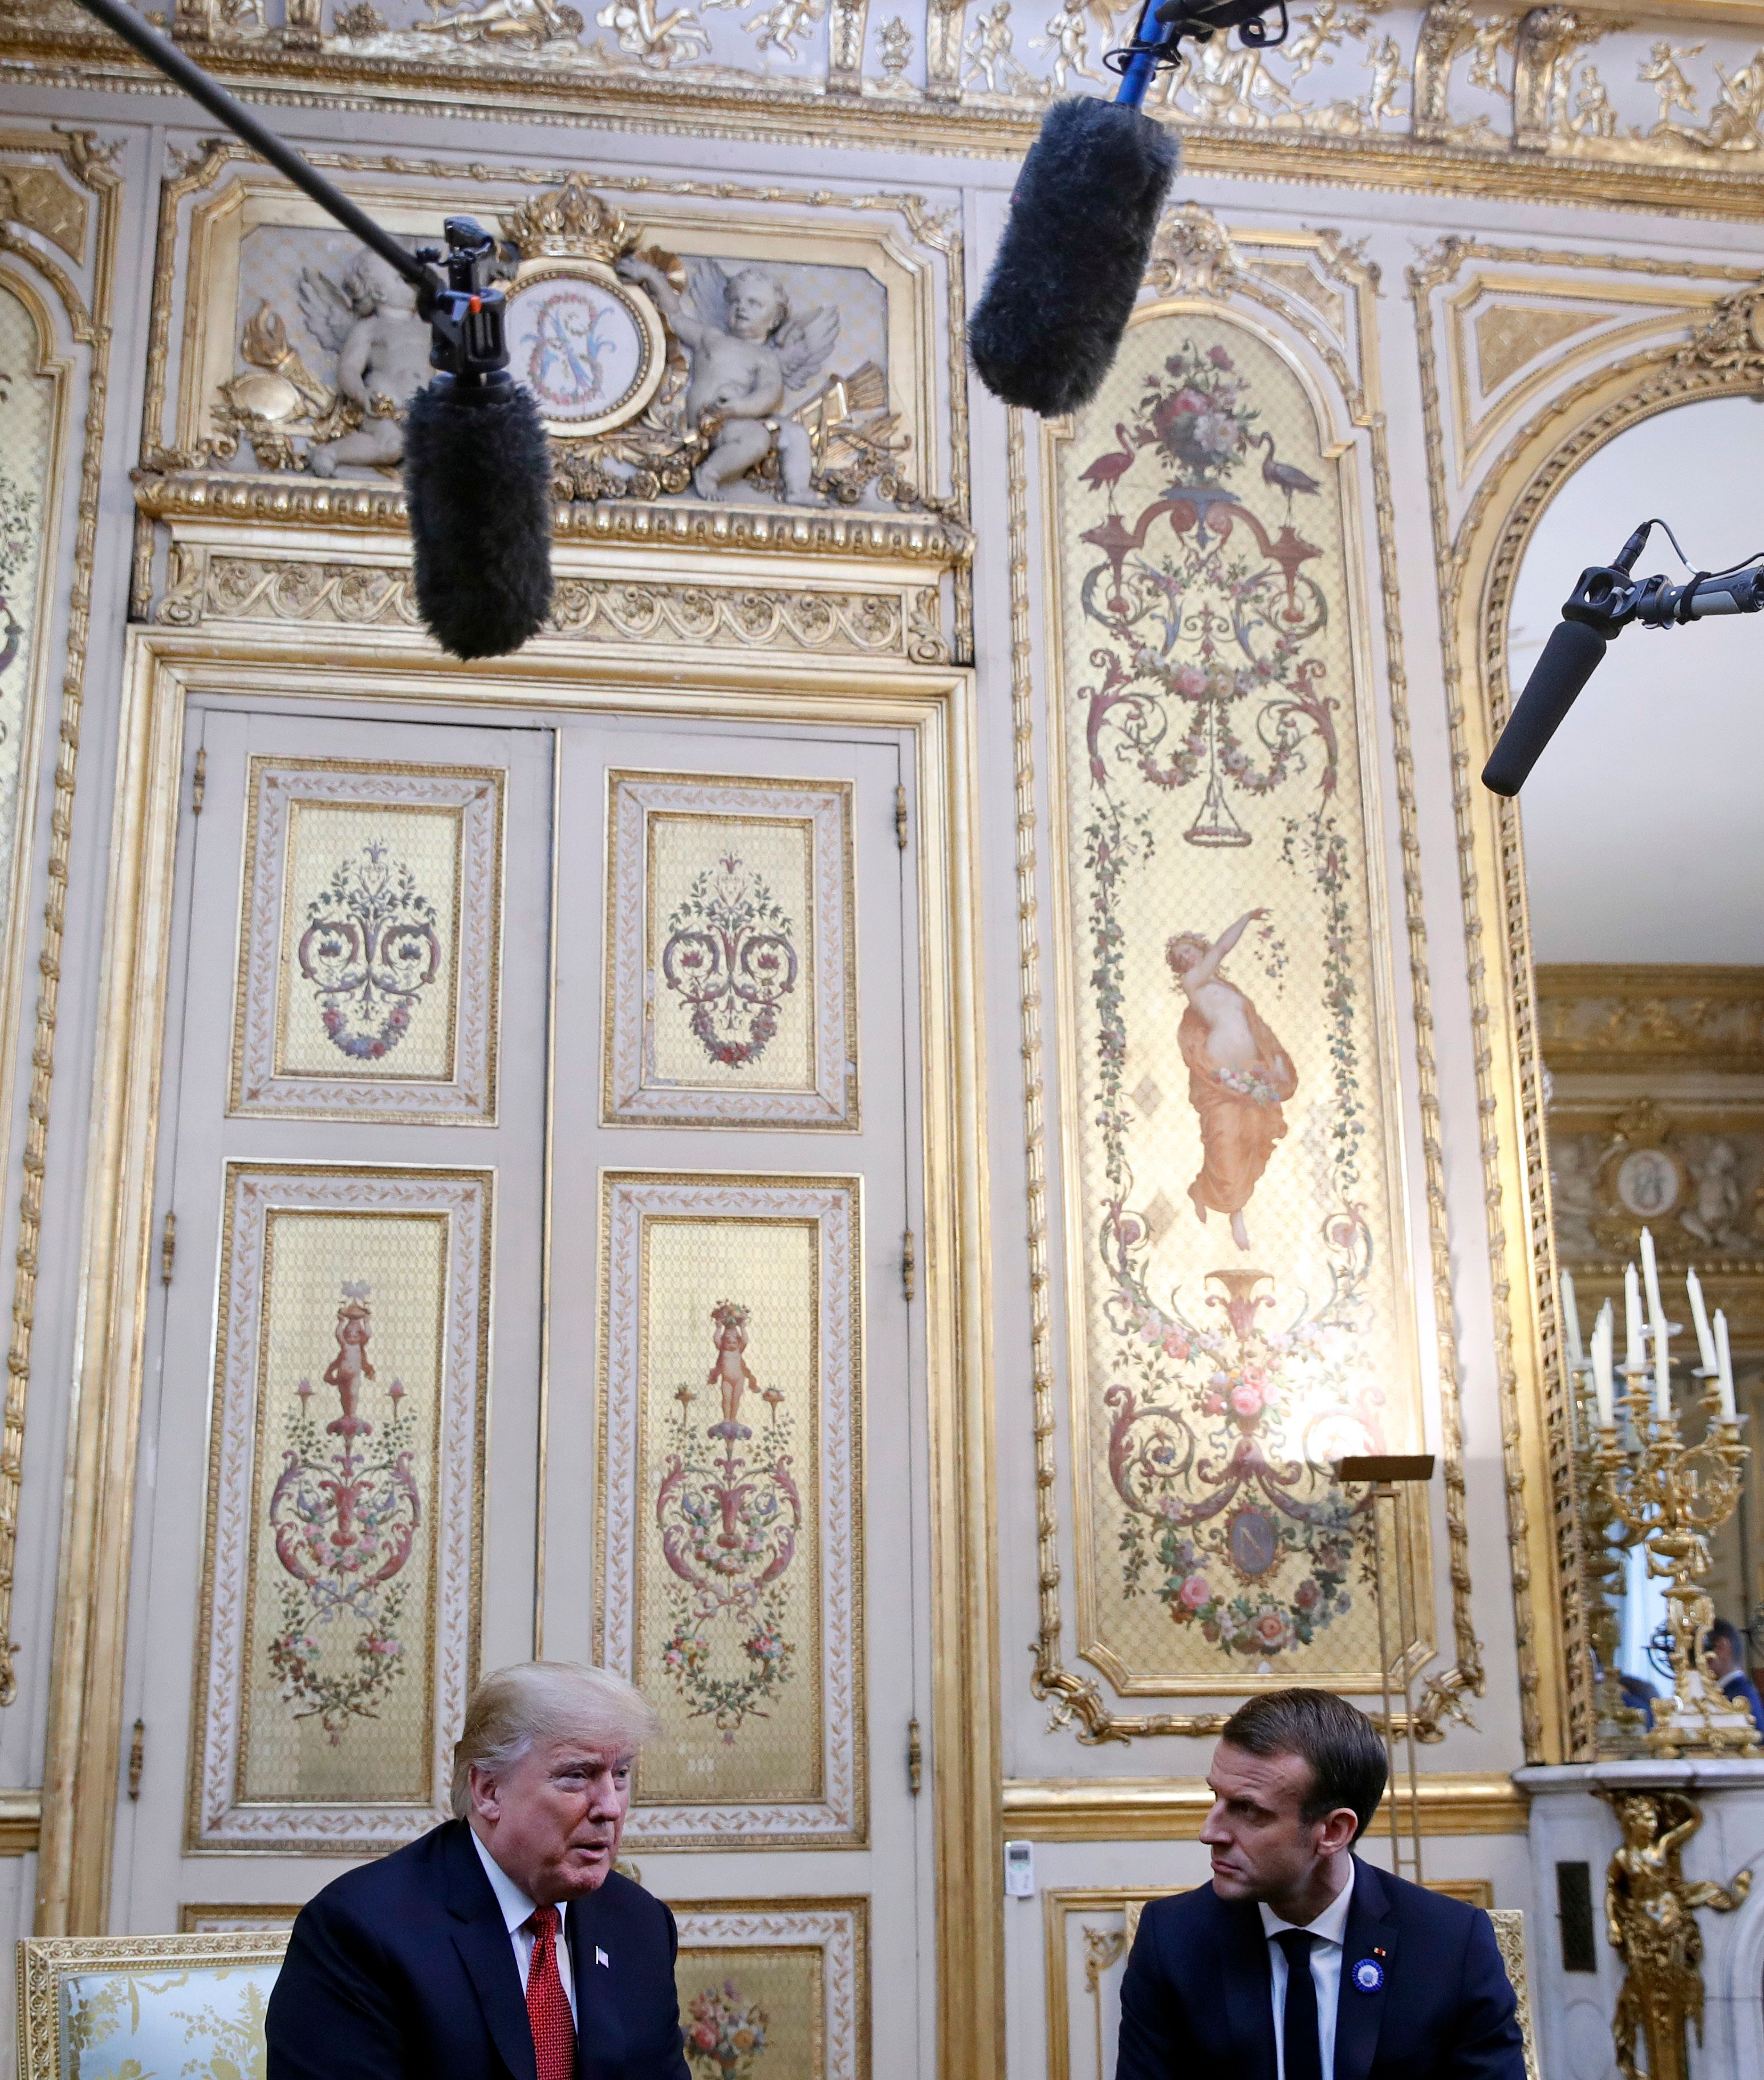 U.S. President Donald Trump meeting with French President Emmanuel Macron on